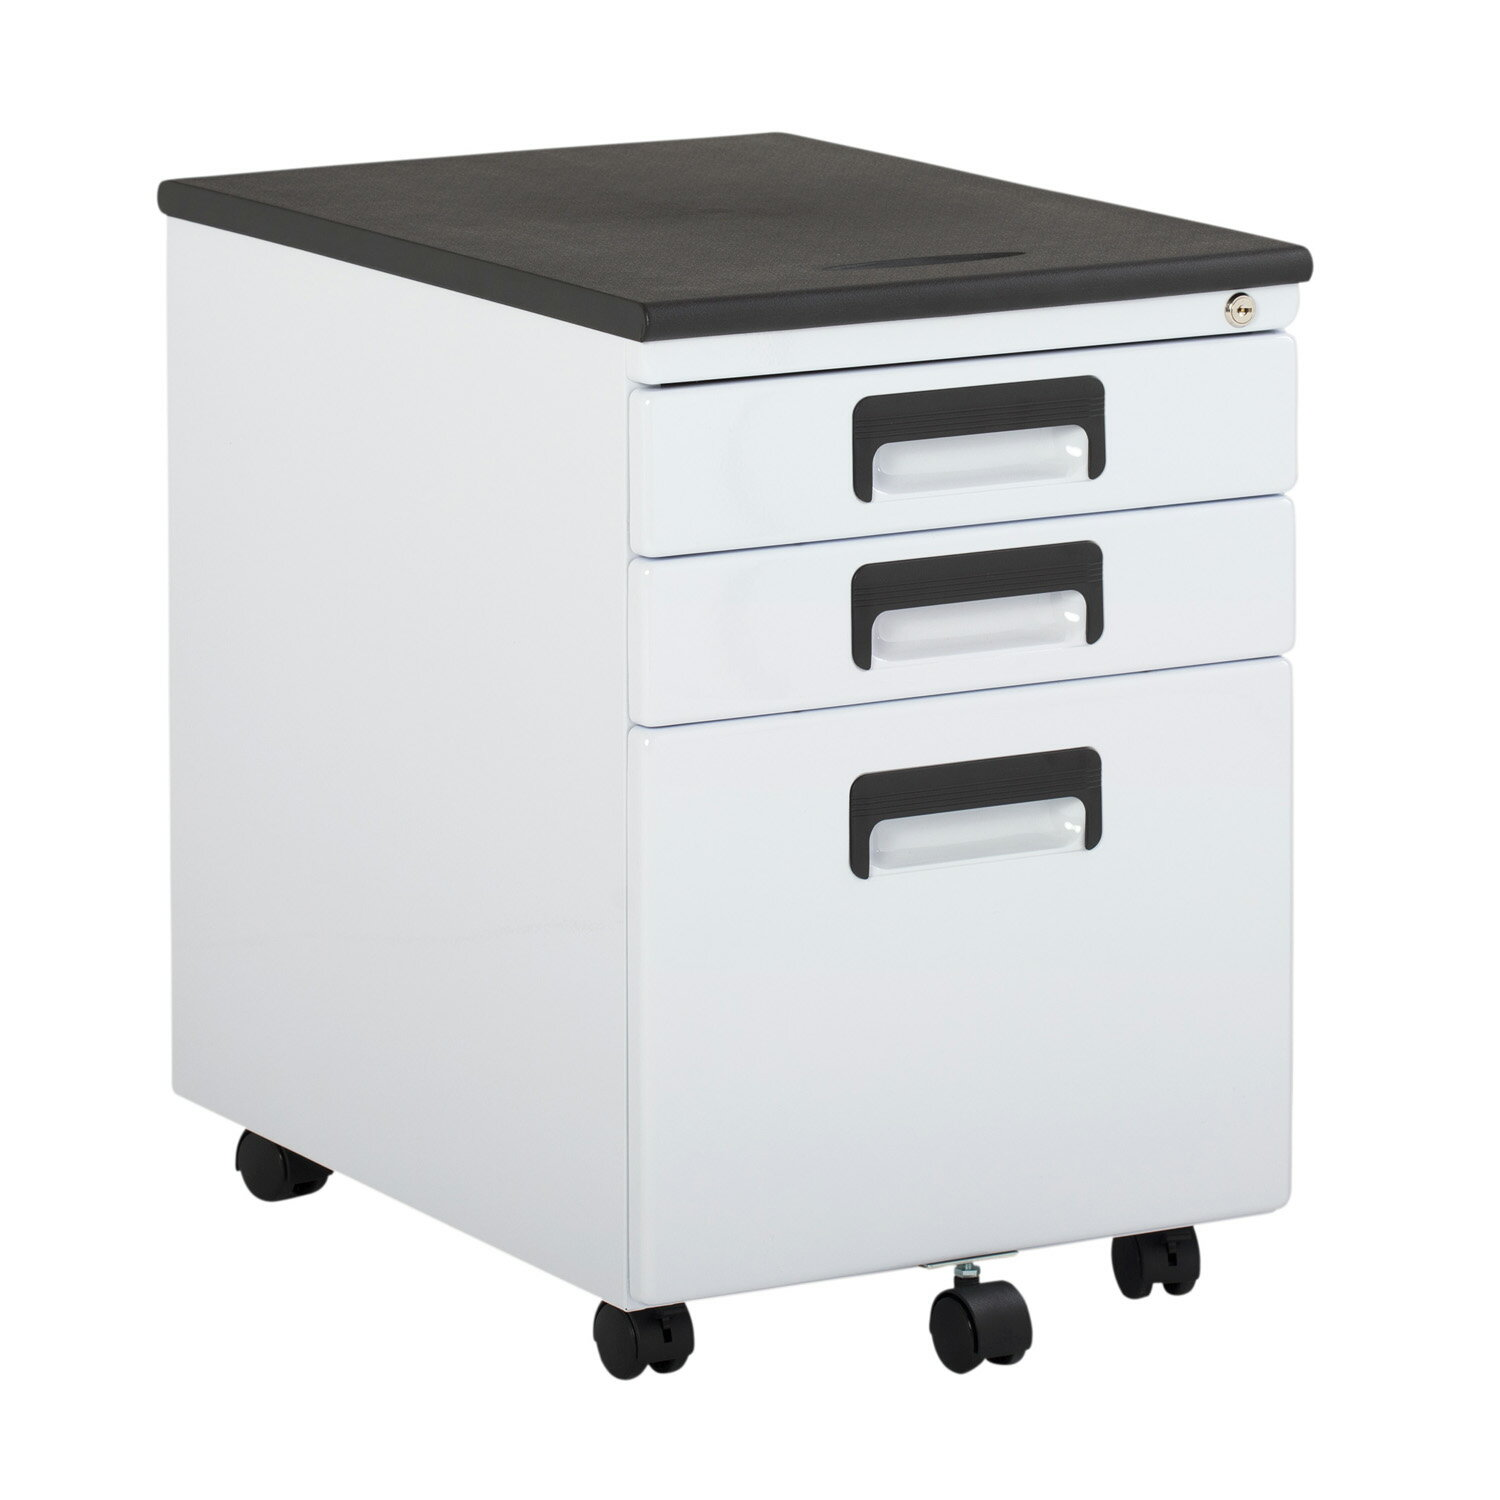 Offex 3 Drawer Metal Rolling File Cabinet With Locking Drawers White Black 0